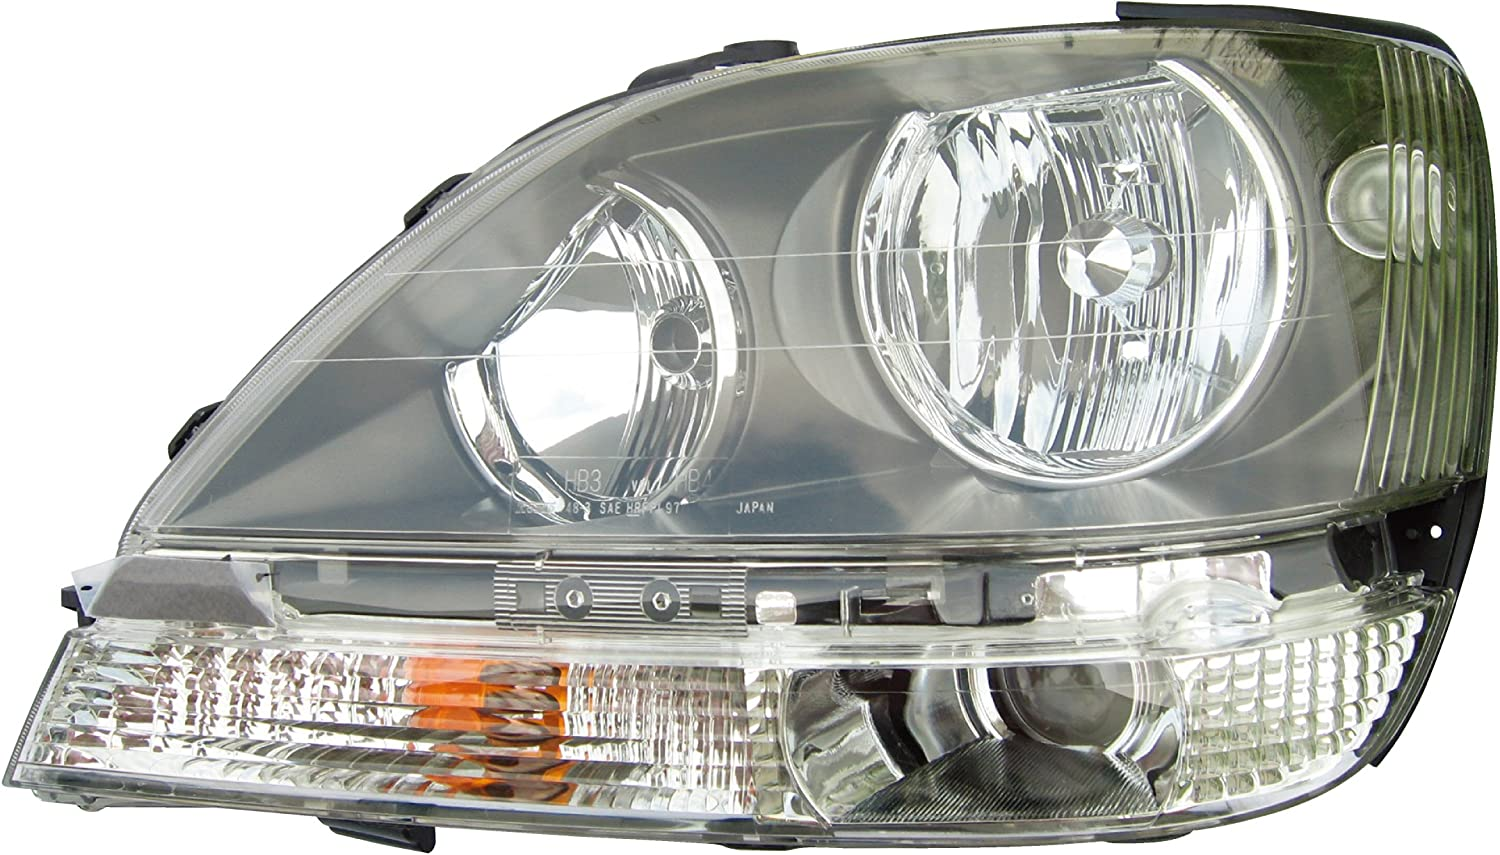 Eagle Eyes 292015 Right Left Driver Passenger Side OS NS RH LH Side Repeaters Indicators Blinkers Chrome Crystal Clear